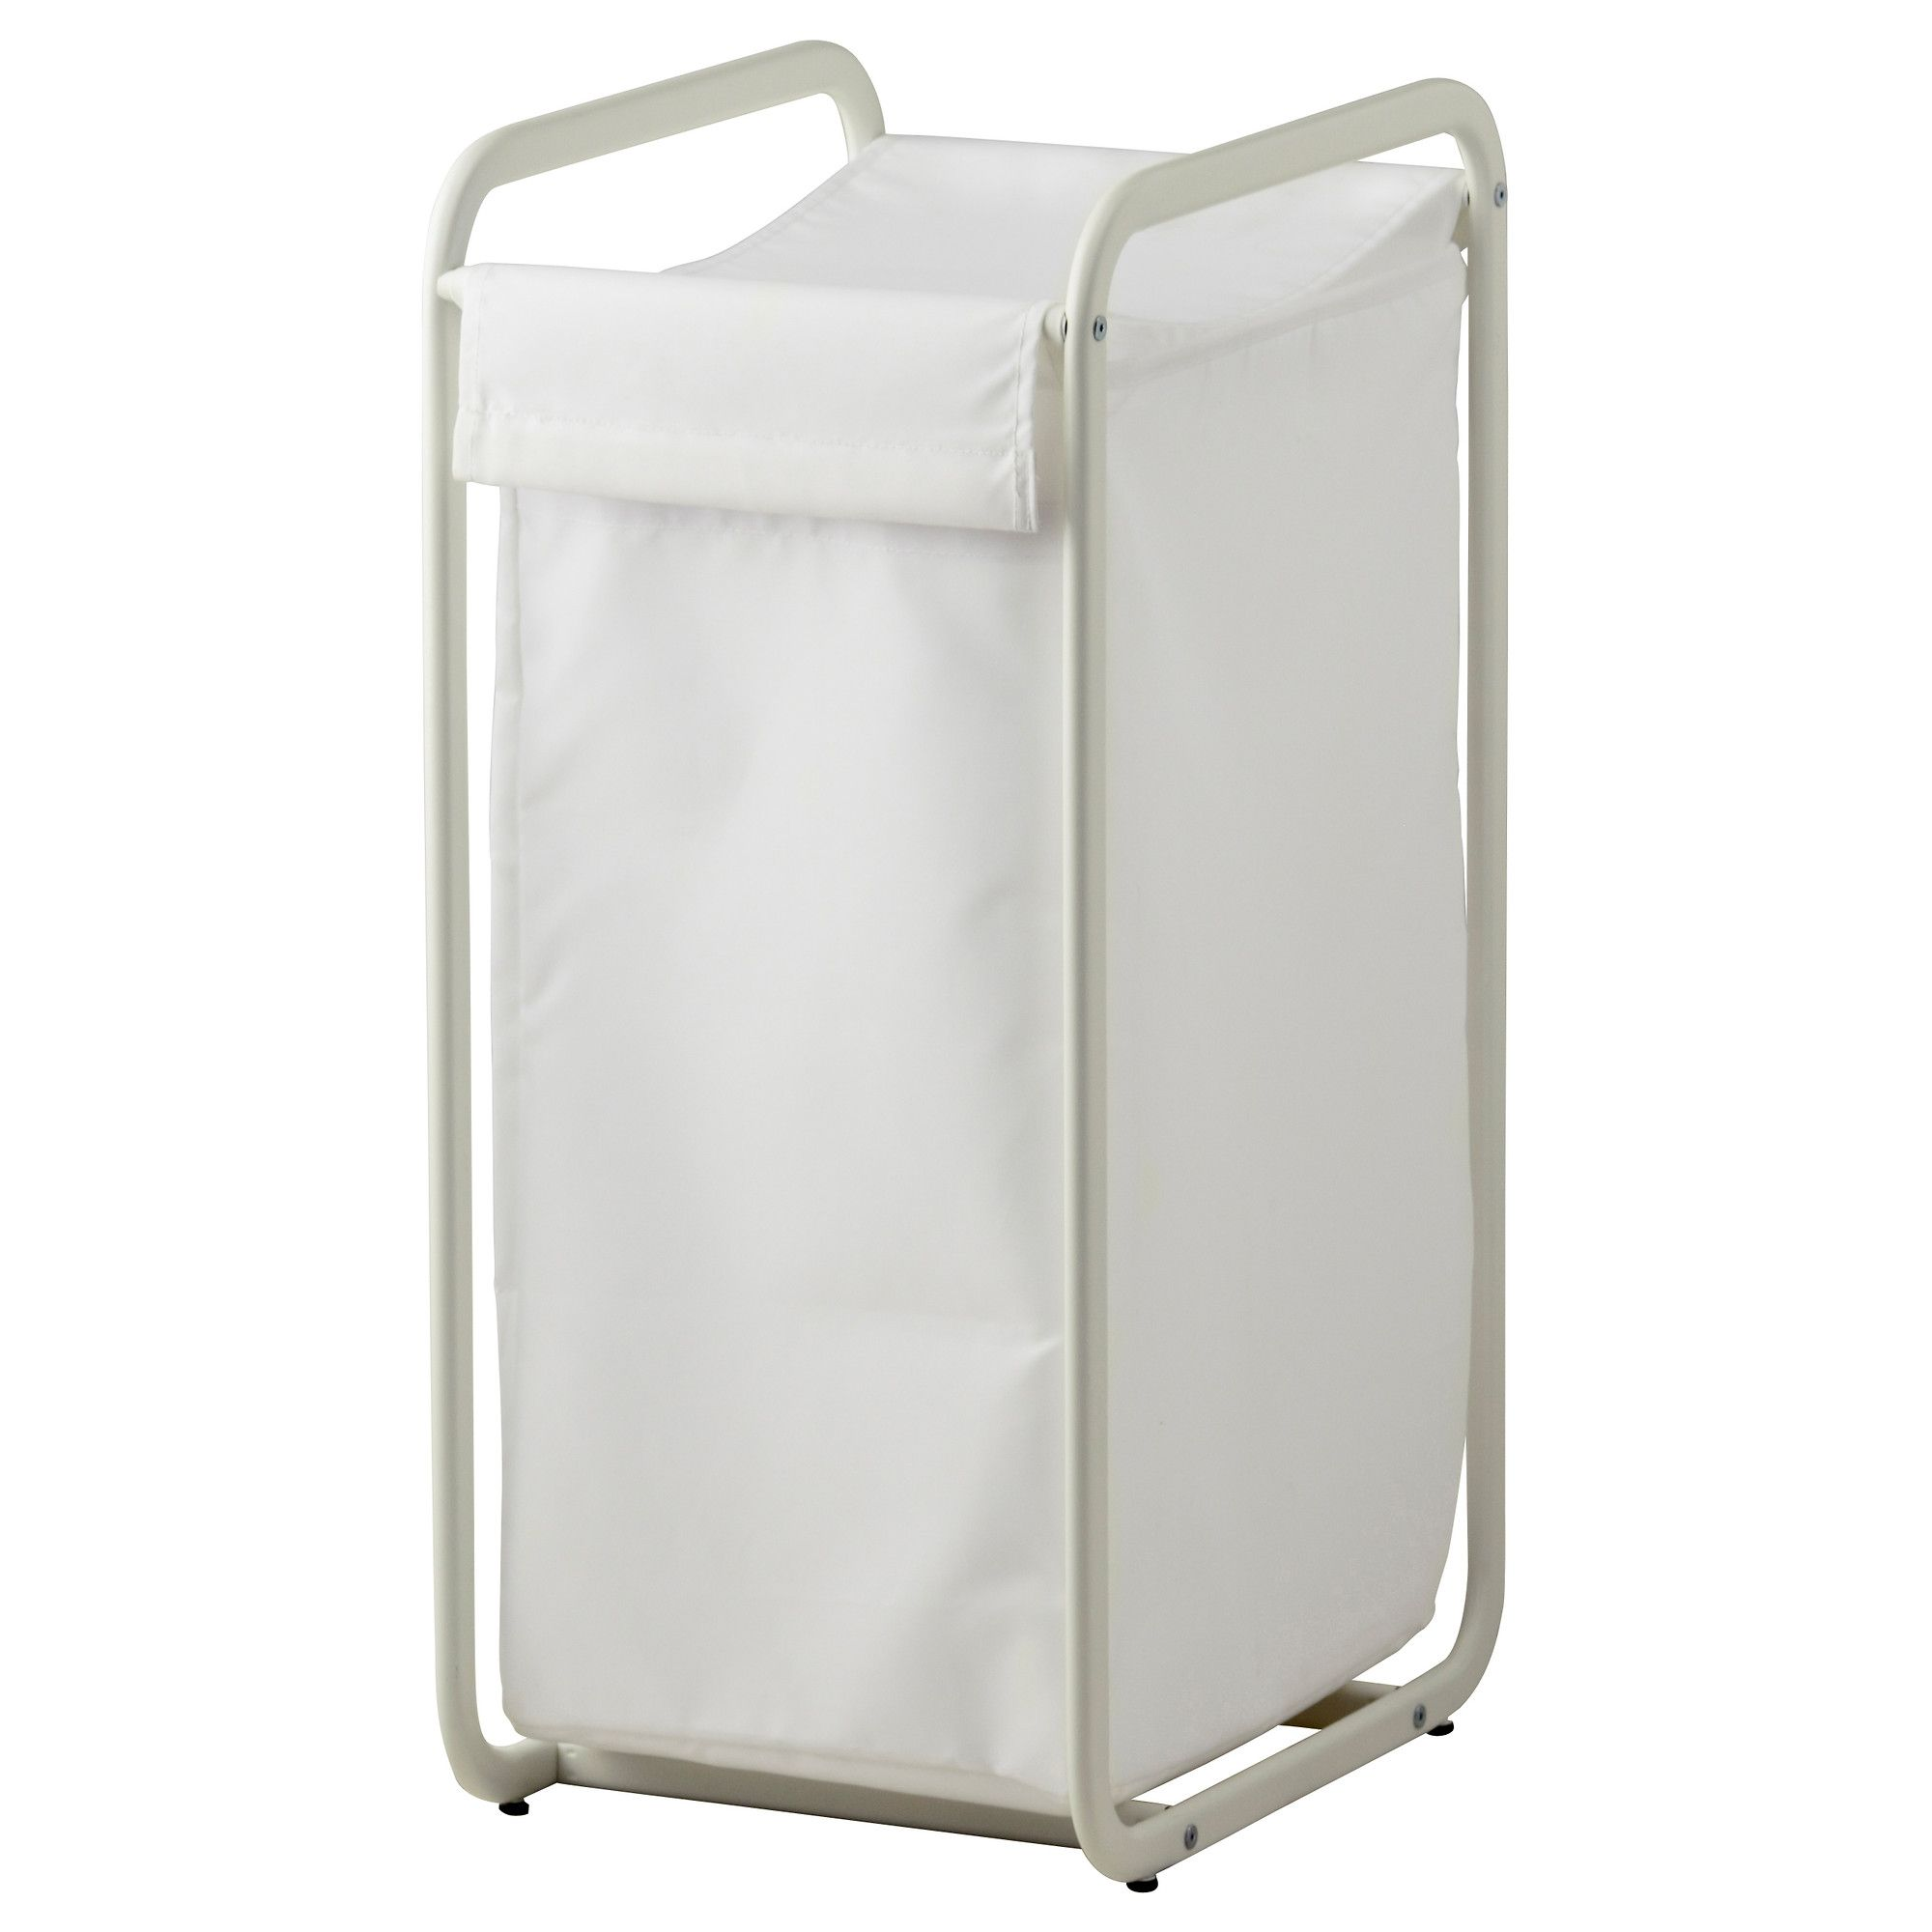 ALGOT Laundry bag with frame - IKEA | IKEA Wishlist | Pinterest ...